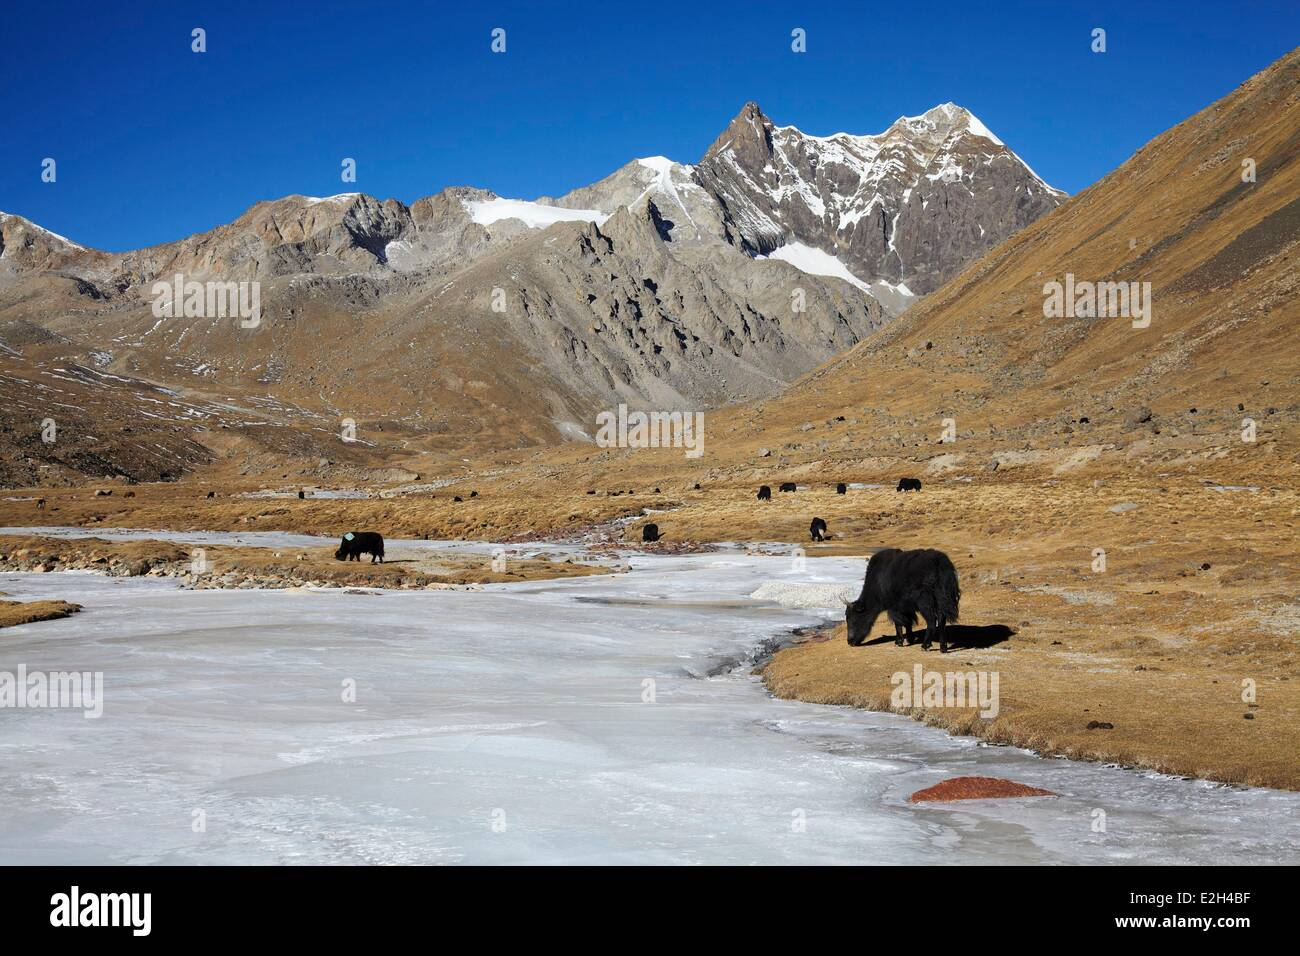 China Tibet yaks on Shogula pass (5300m) on Lhasa to Shigatze road - Stock Image